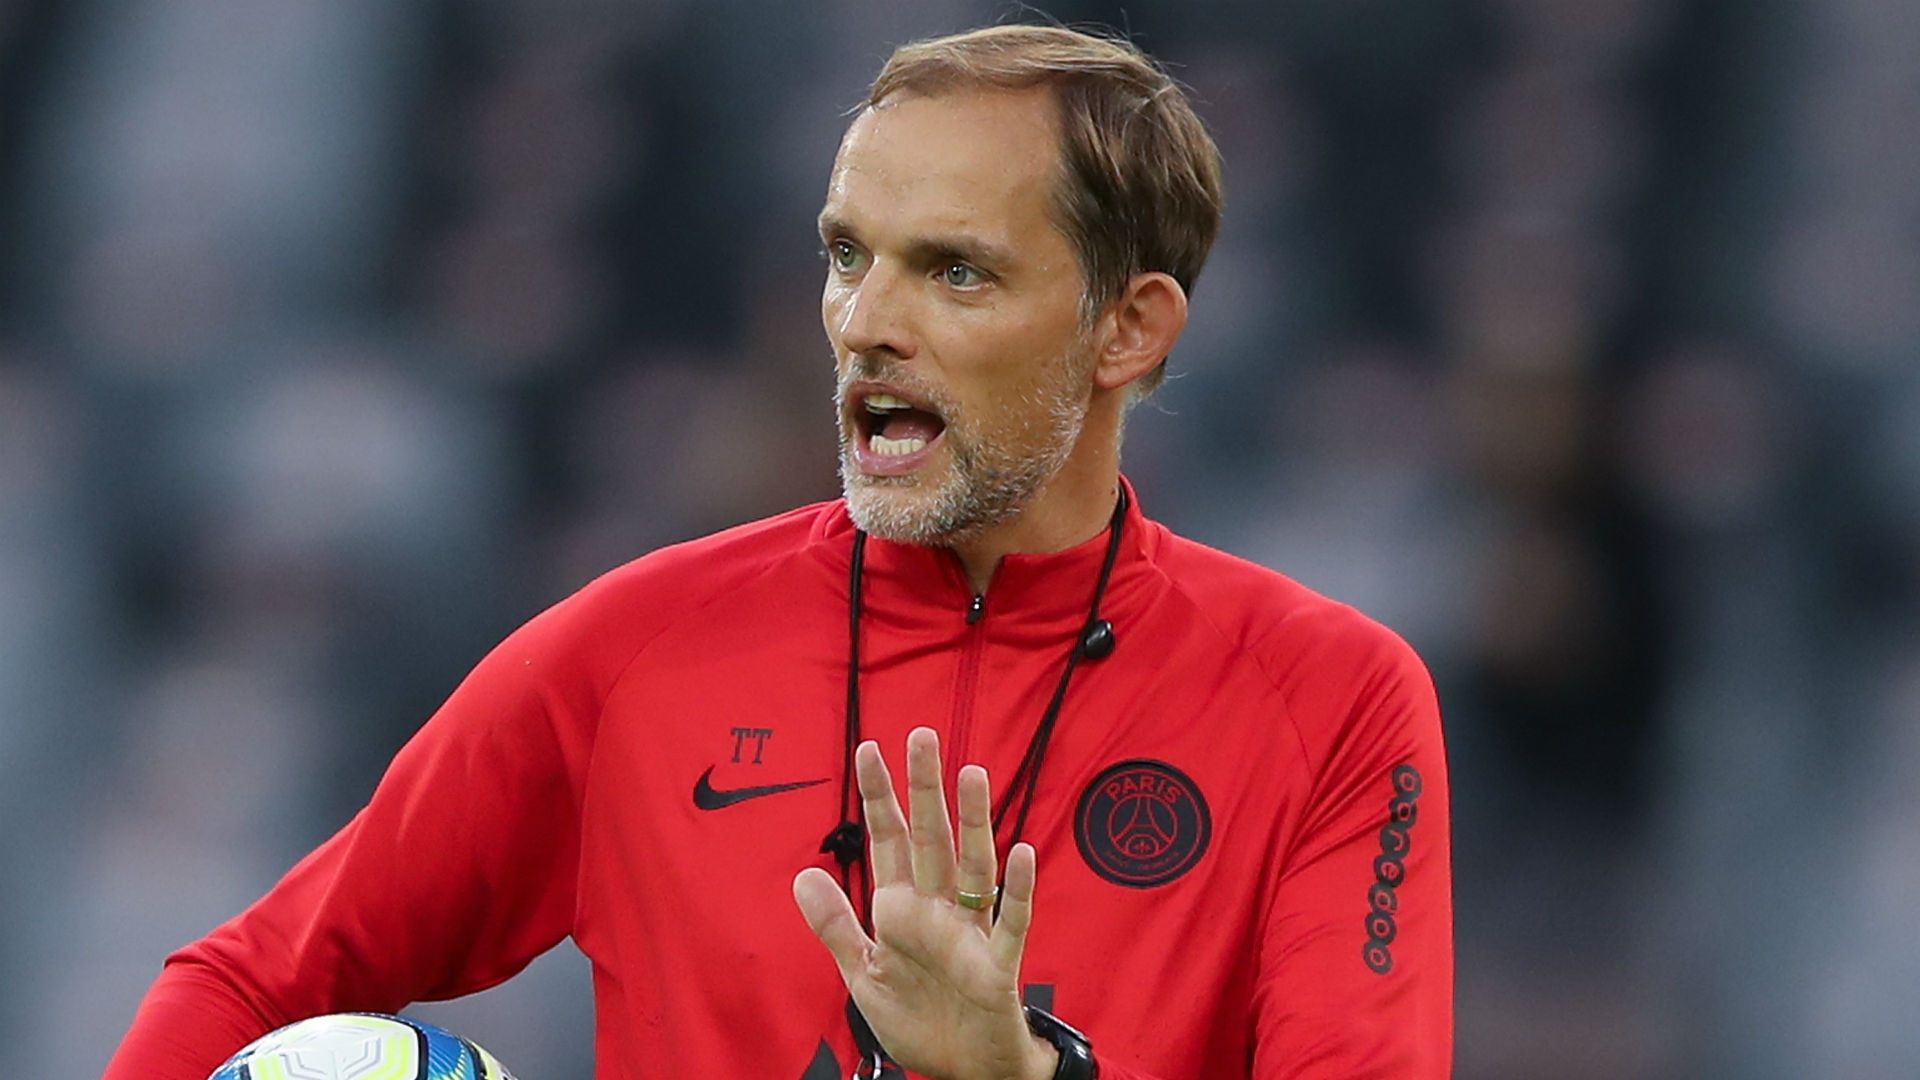 Tuchel wants aggressive Paris Saint-Germain against Real Madrid